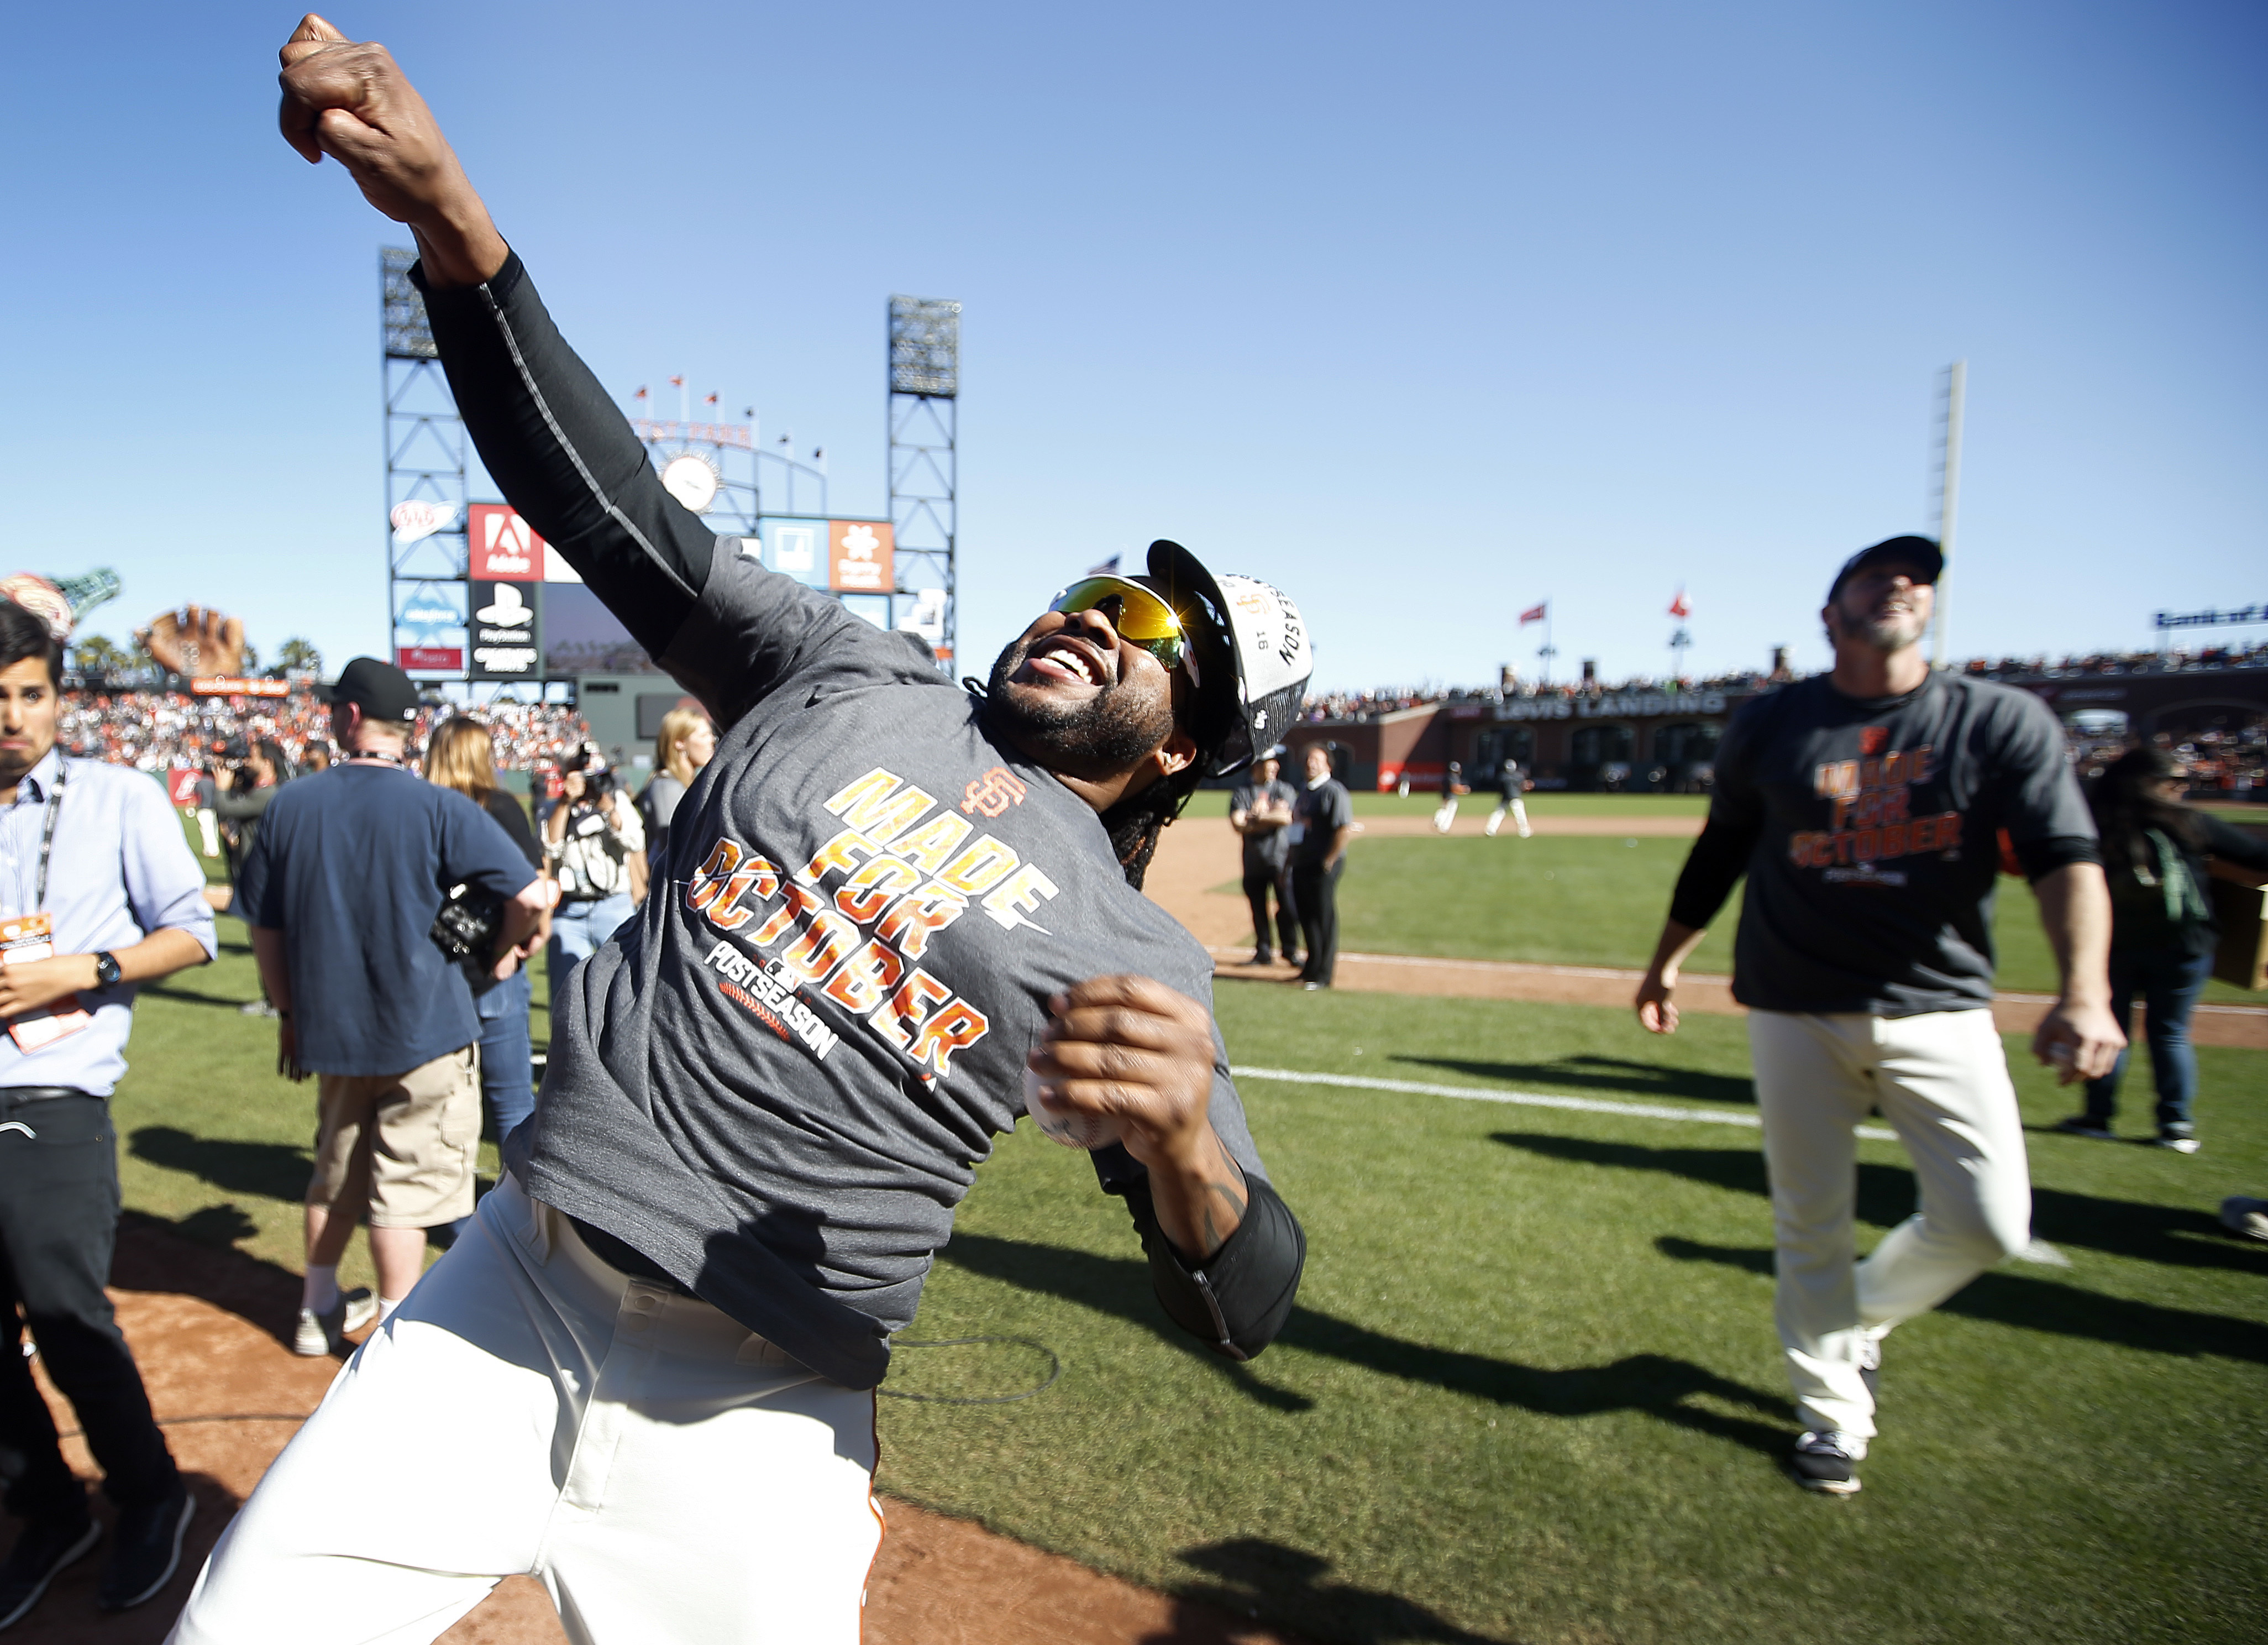 San Francisco Giants' Johnny Cueto, throws a ball into the crowd during a celebration on the field after clinching NL second-place wild card spot following their win over the Los Angeles Dodgers in a baseball game in San Francisco, Sunday, Oct. 2, 2016. (